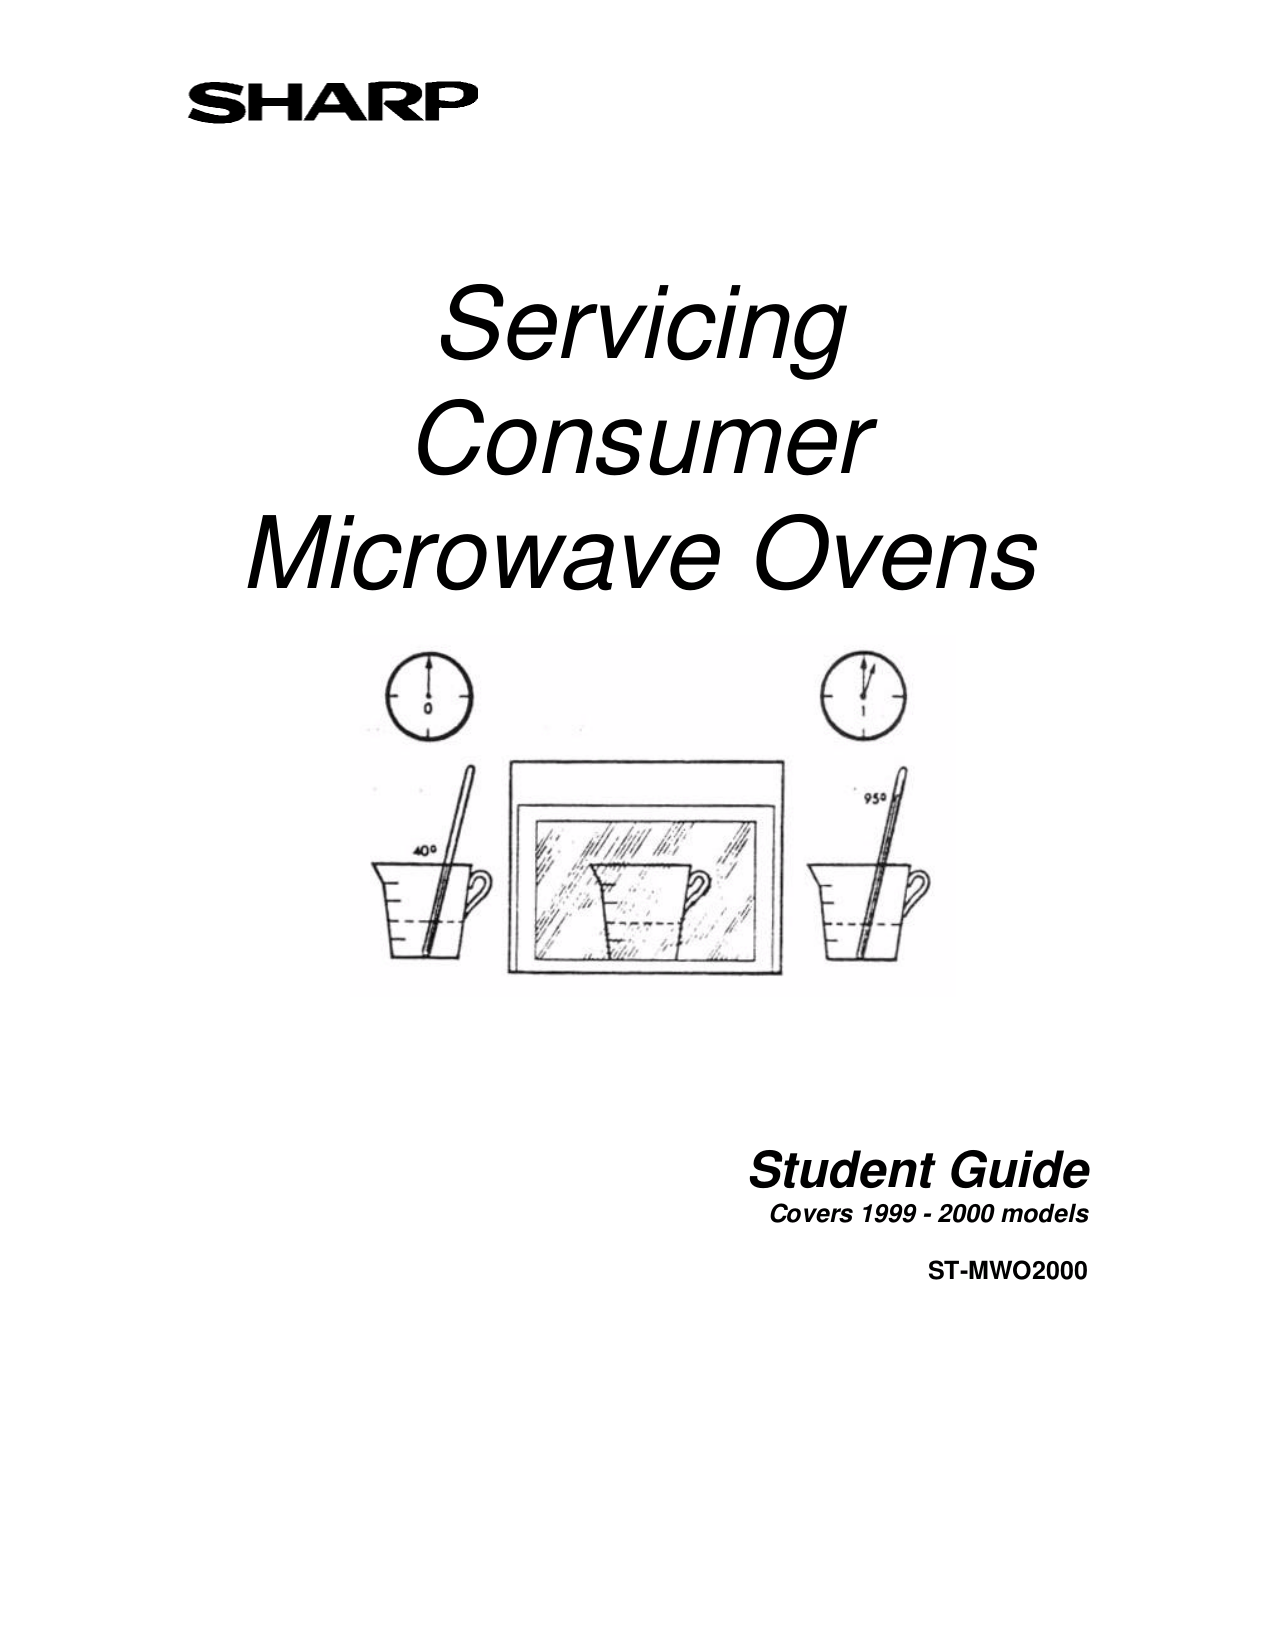 Download free pdf for Sharp R-630DS Microwave manual